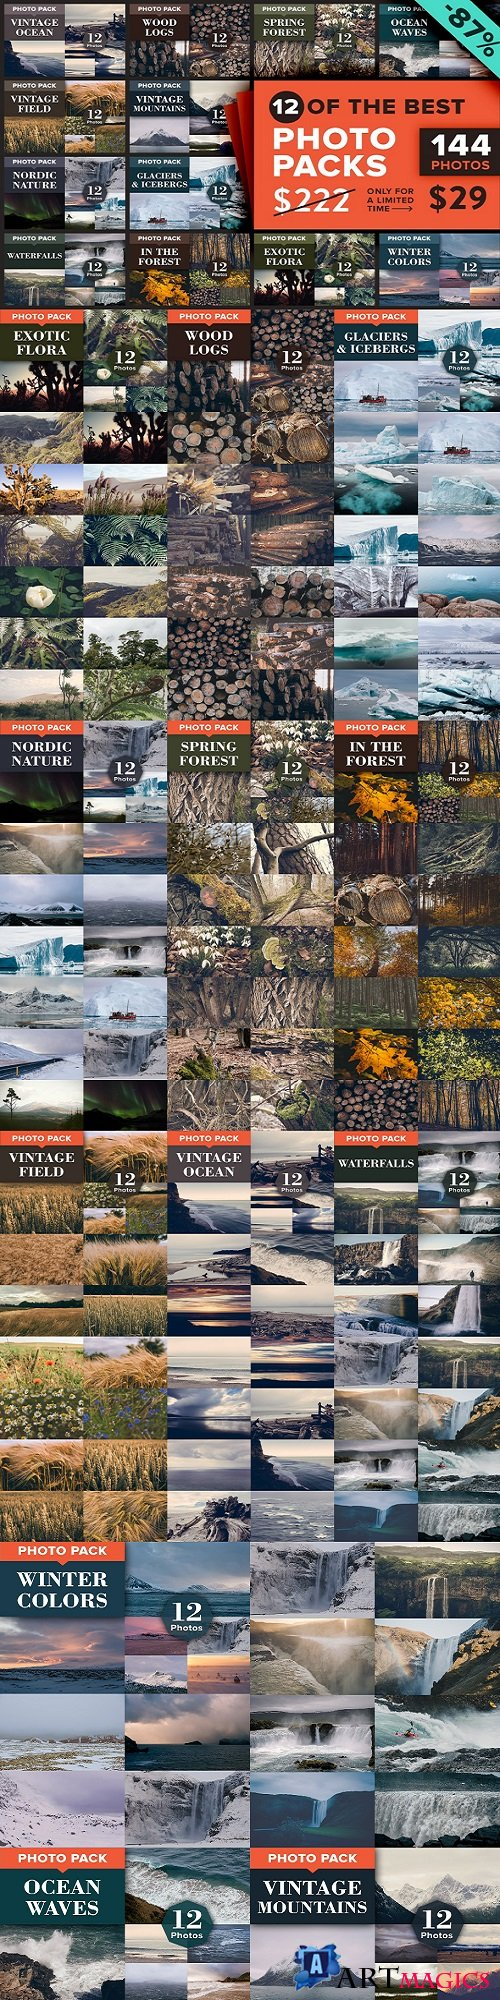 12 Photo Packs - 144 Nature Photos - 871470